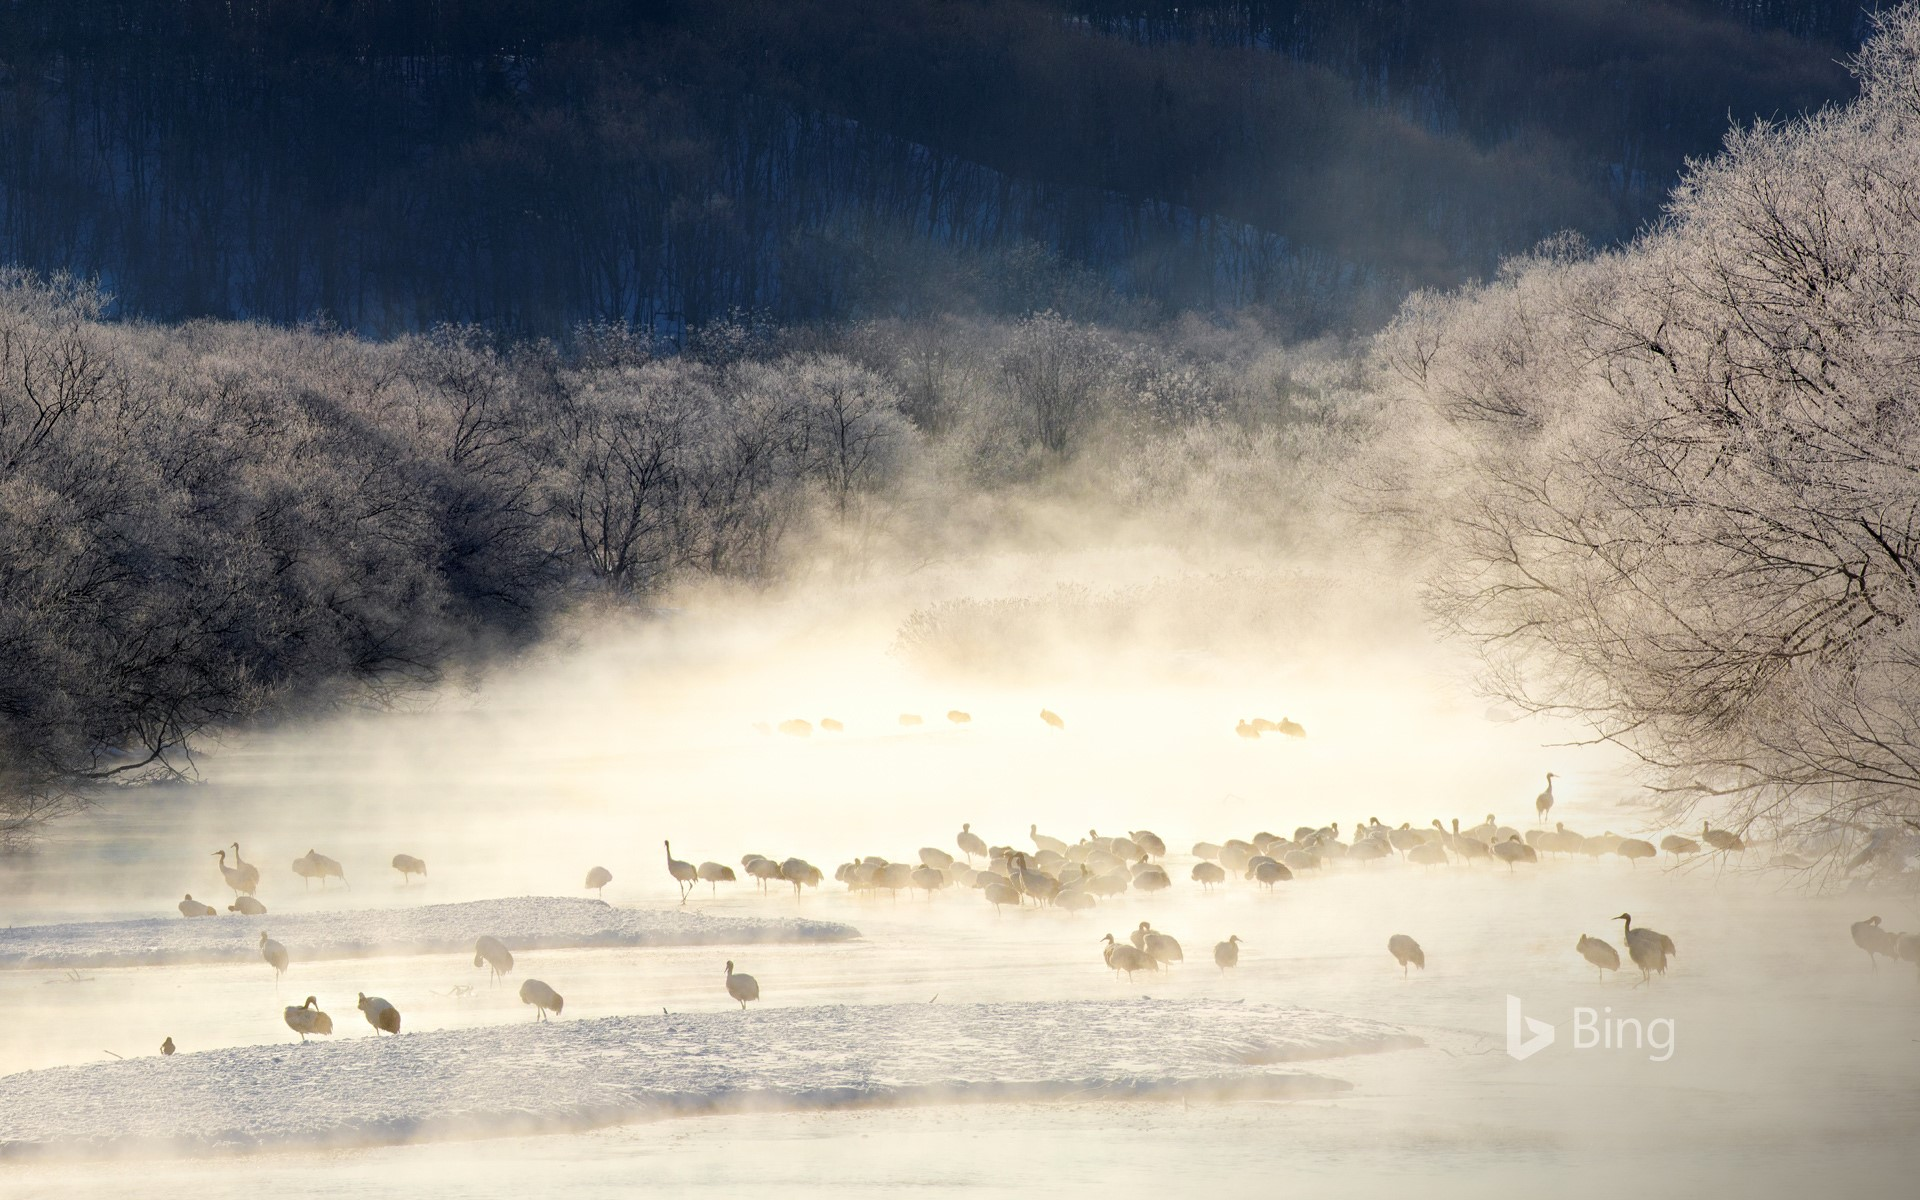 Red-crowned cranes in a mist-covered river, Hokkaido, Japan